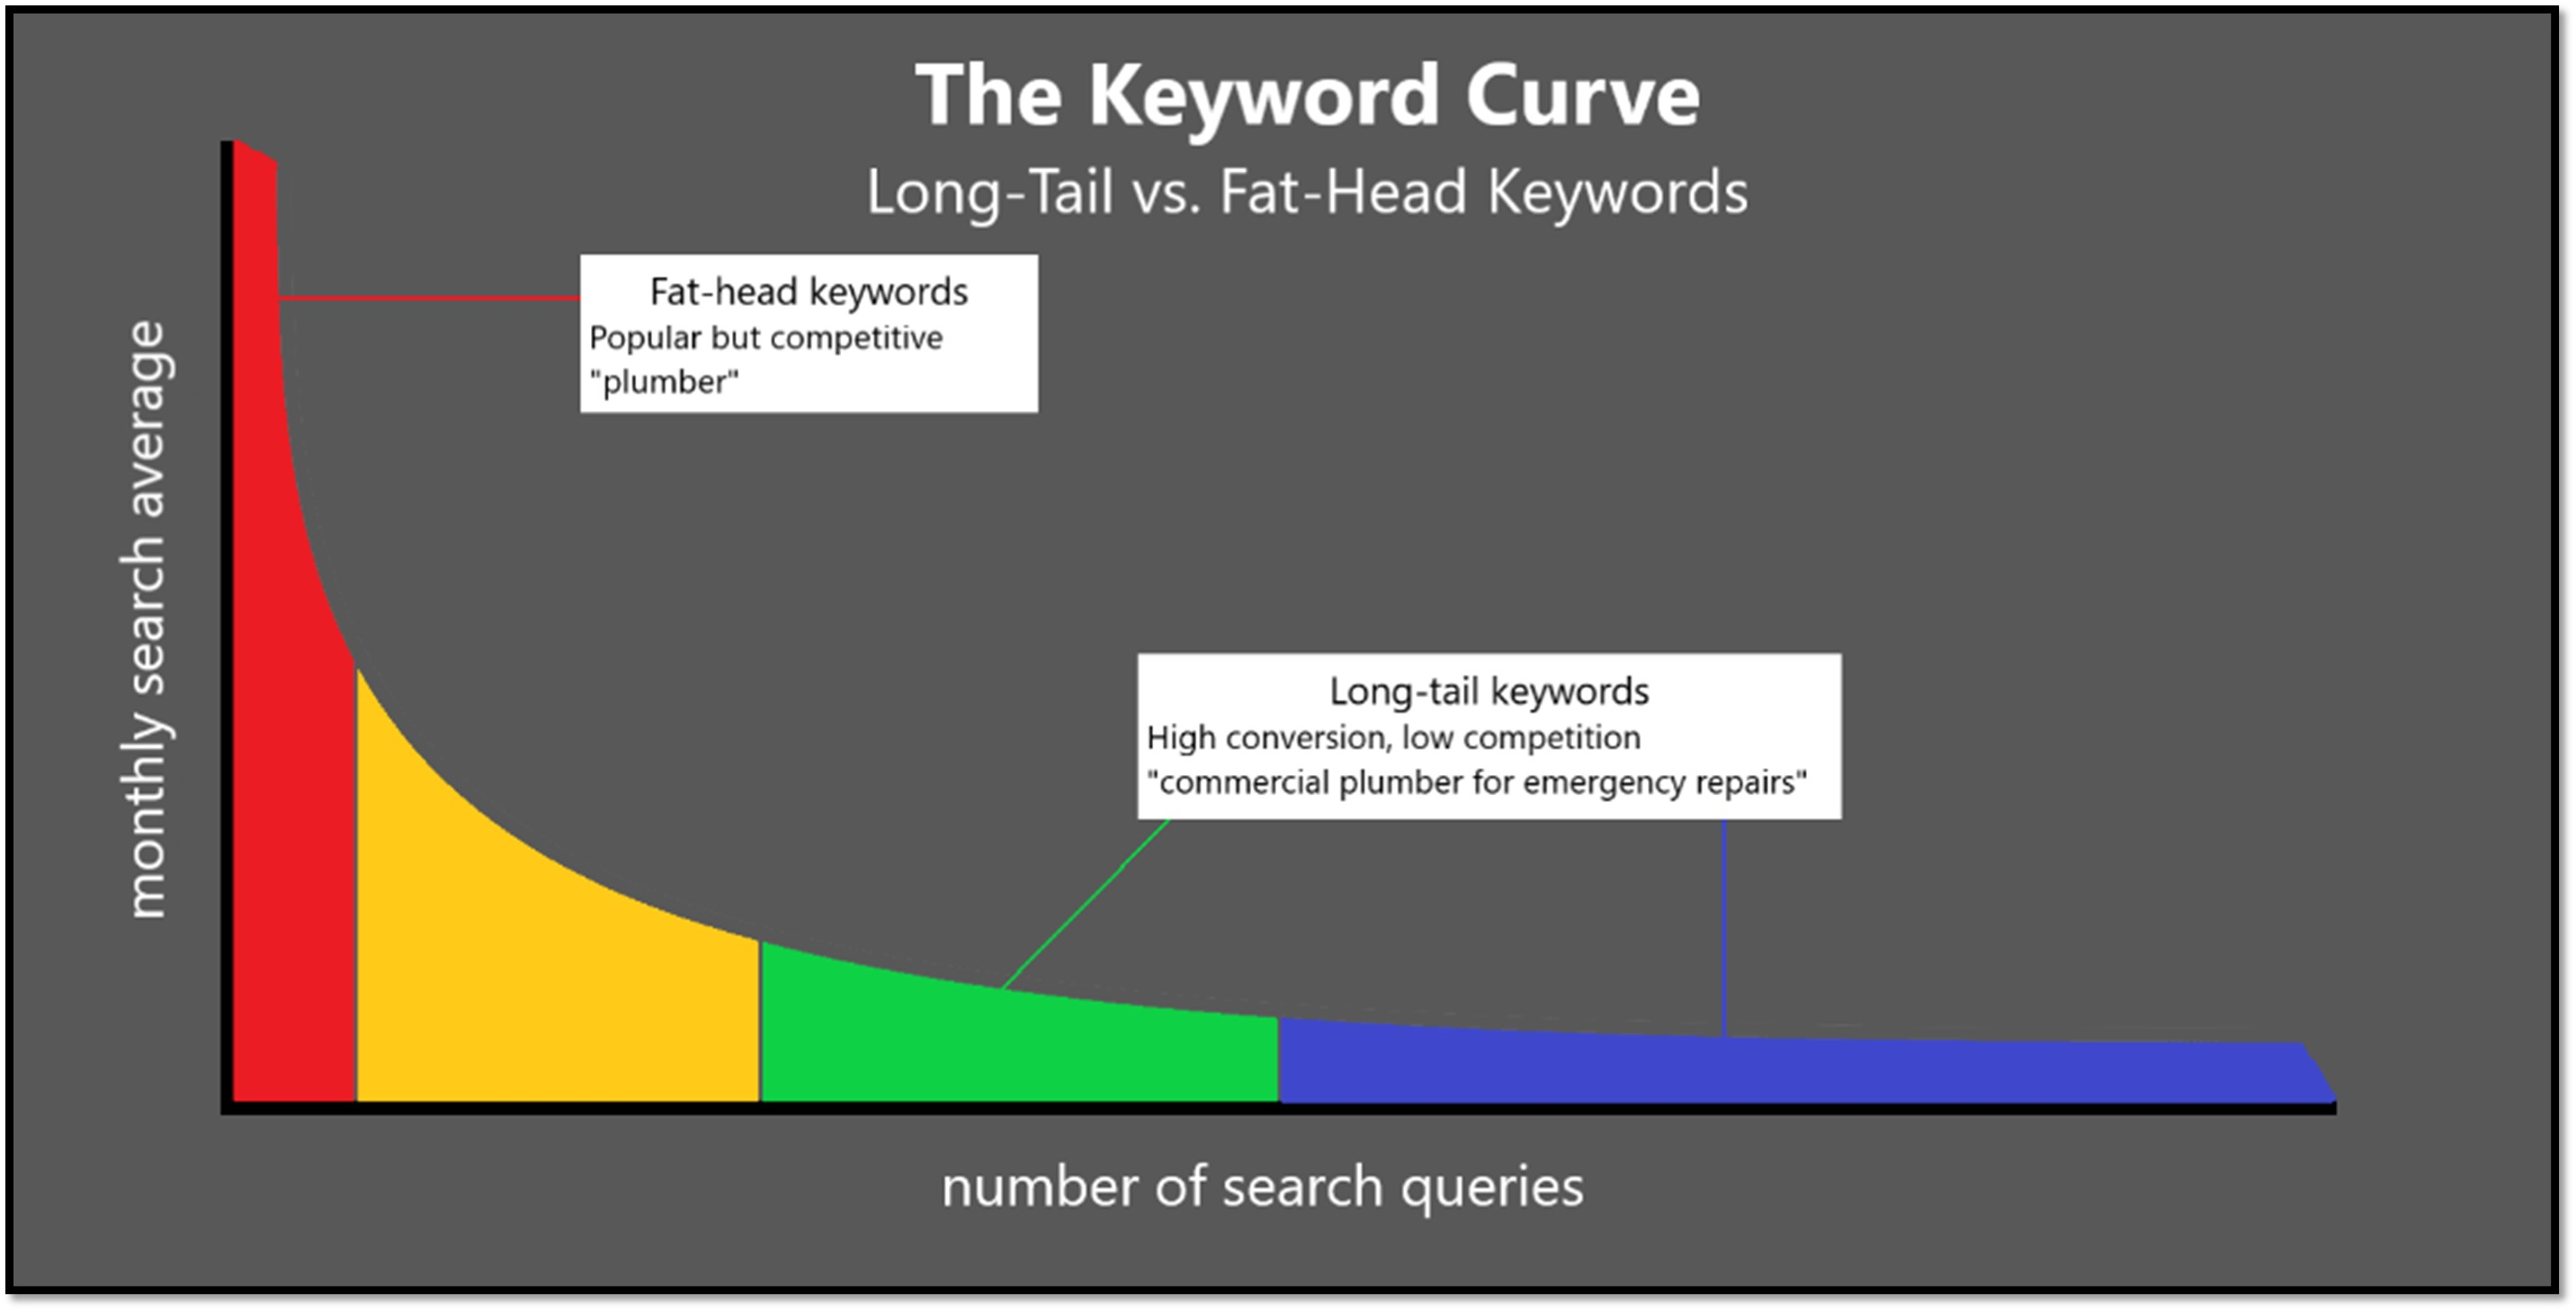 """A graph of """"The Keyword Curve, Long-Tail vs. Fat-Head Keywords."""" Fat-head keywords shown on the left with high search volume but low number of search queries. Long-tail keywords are shown on the right with low search volumes but high number of search queries."""